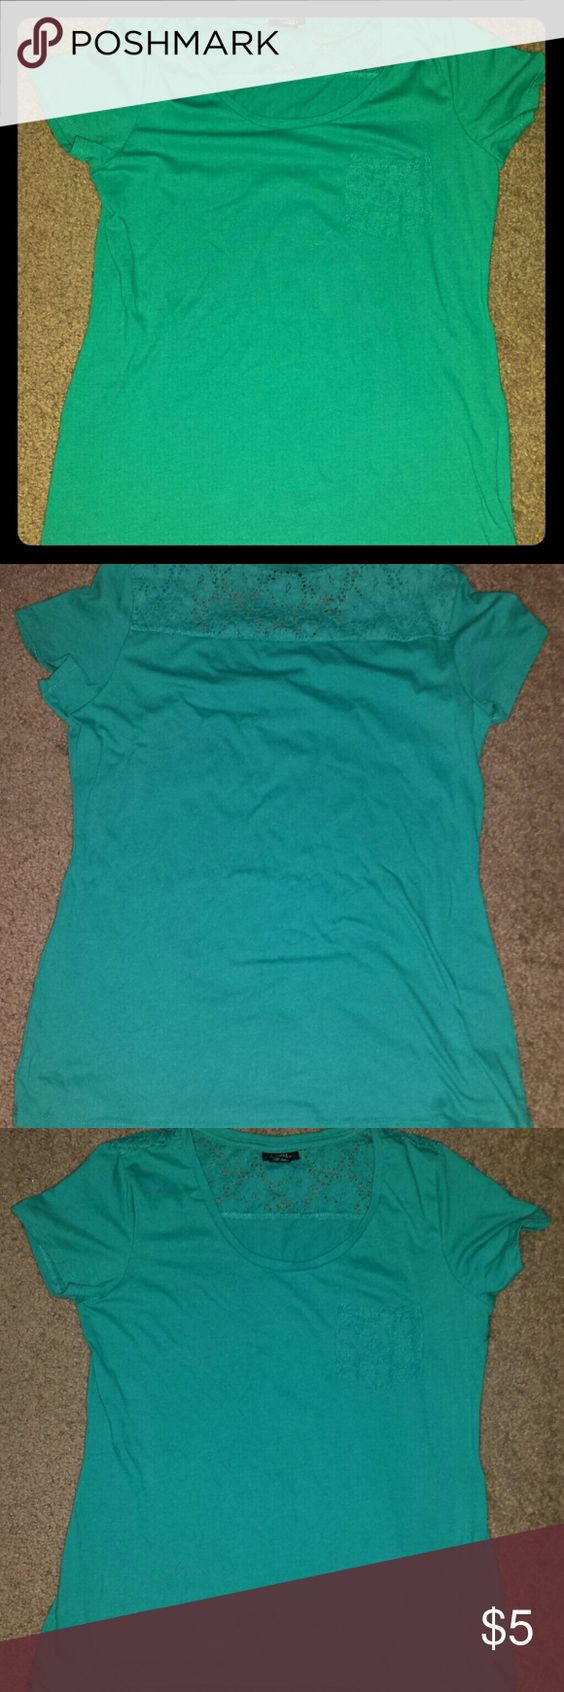 Teal T-shirt with embroidered detail A beautiful teal color t-shirt with embroidered detail on back shoulder area and front pocket. Like new condition, only been worn once. Best paired with skinny jeans for a casual look. From a smoke-free home. Rue 21 Tops Tees - Short Sleeve